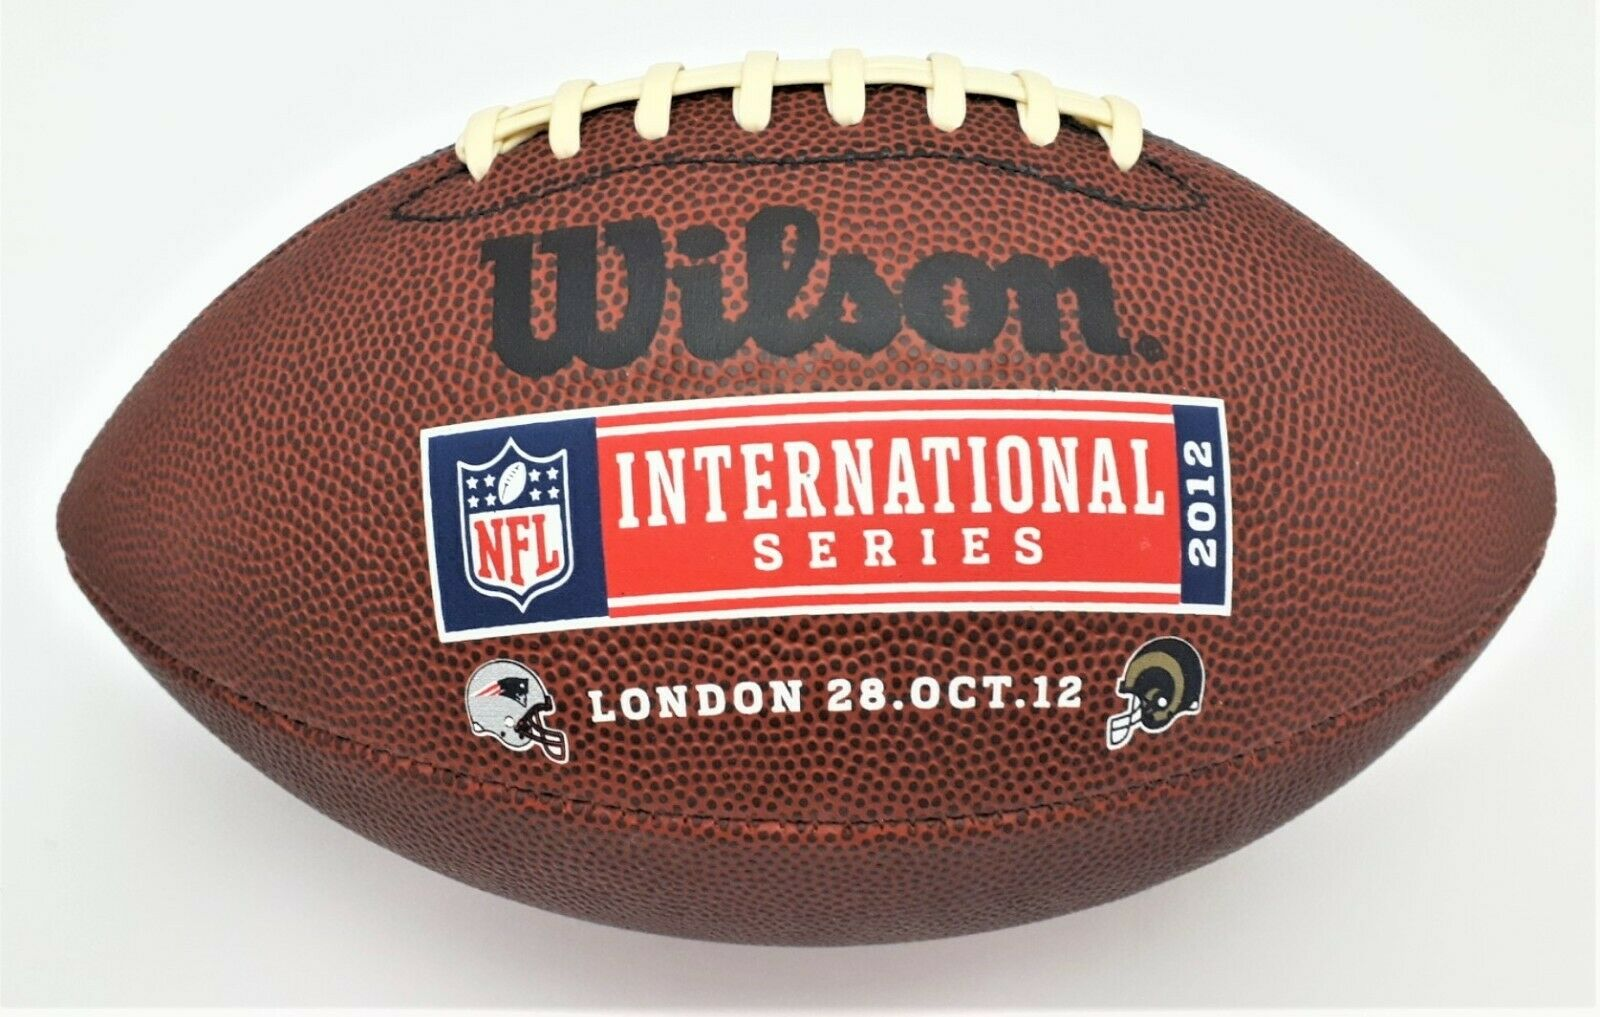 Wilson extreme American Football NFL International Series 2012 London 28 OCT 12